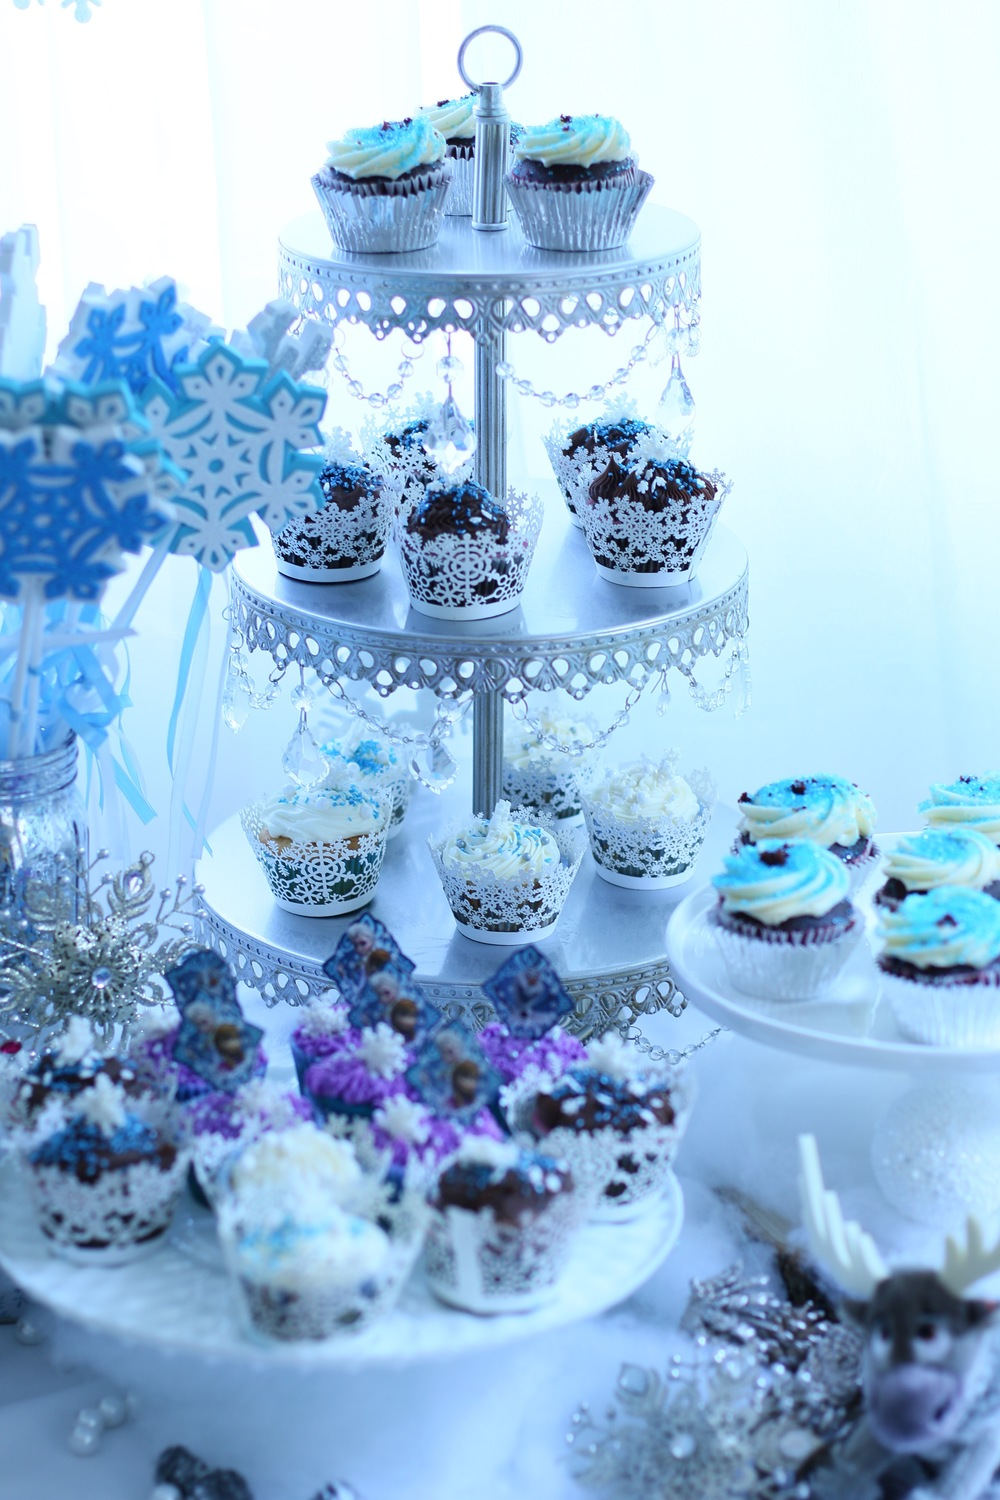 Cupcake stands - Rentals for a FROZEN party. @inJOYtheParty